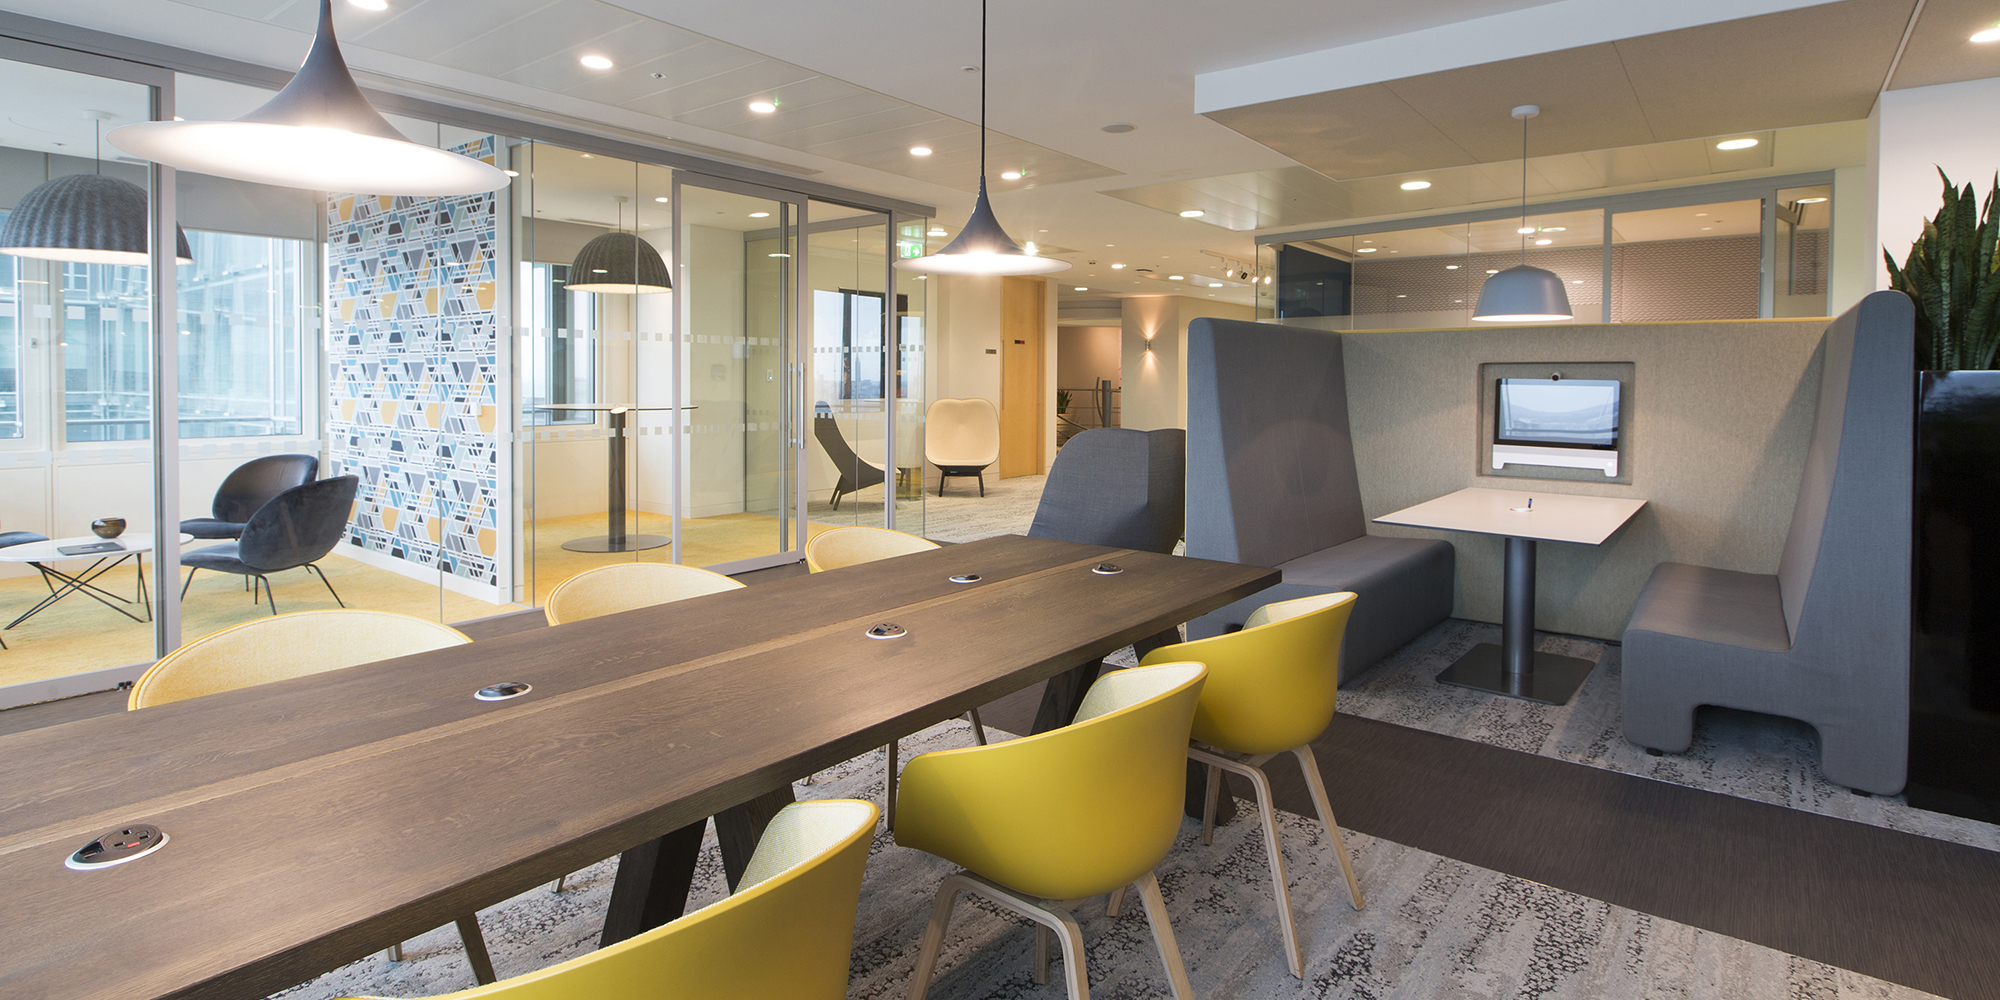 London headquarters interior architecture redesign - the refurbished coffee bar provides relaxed collaborative working areas